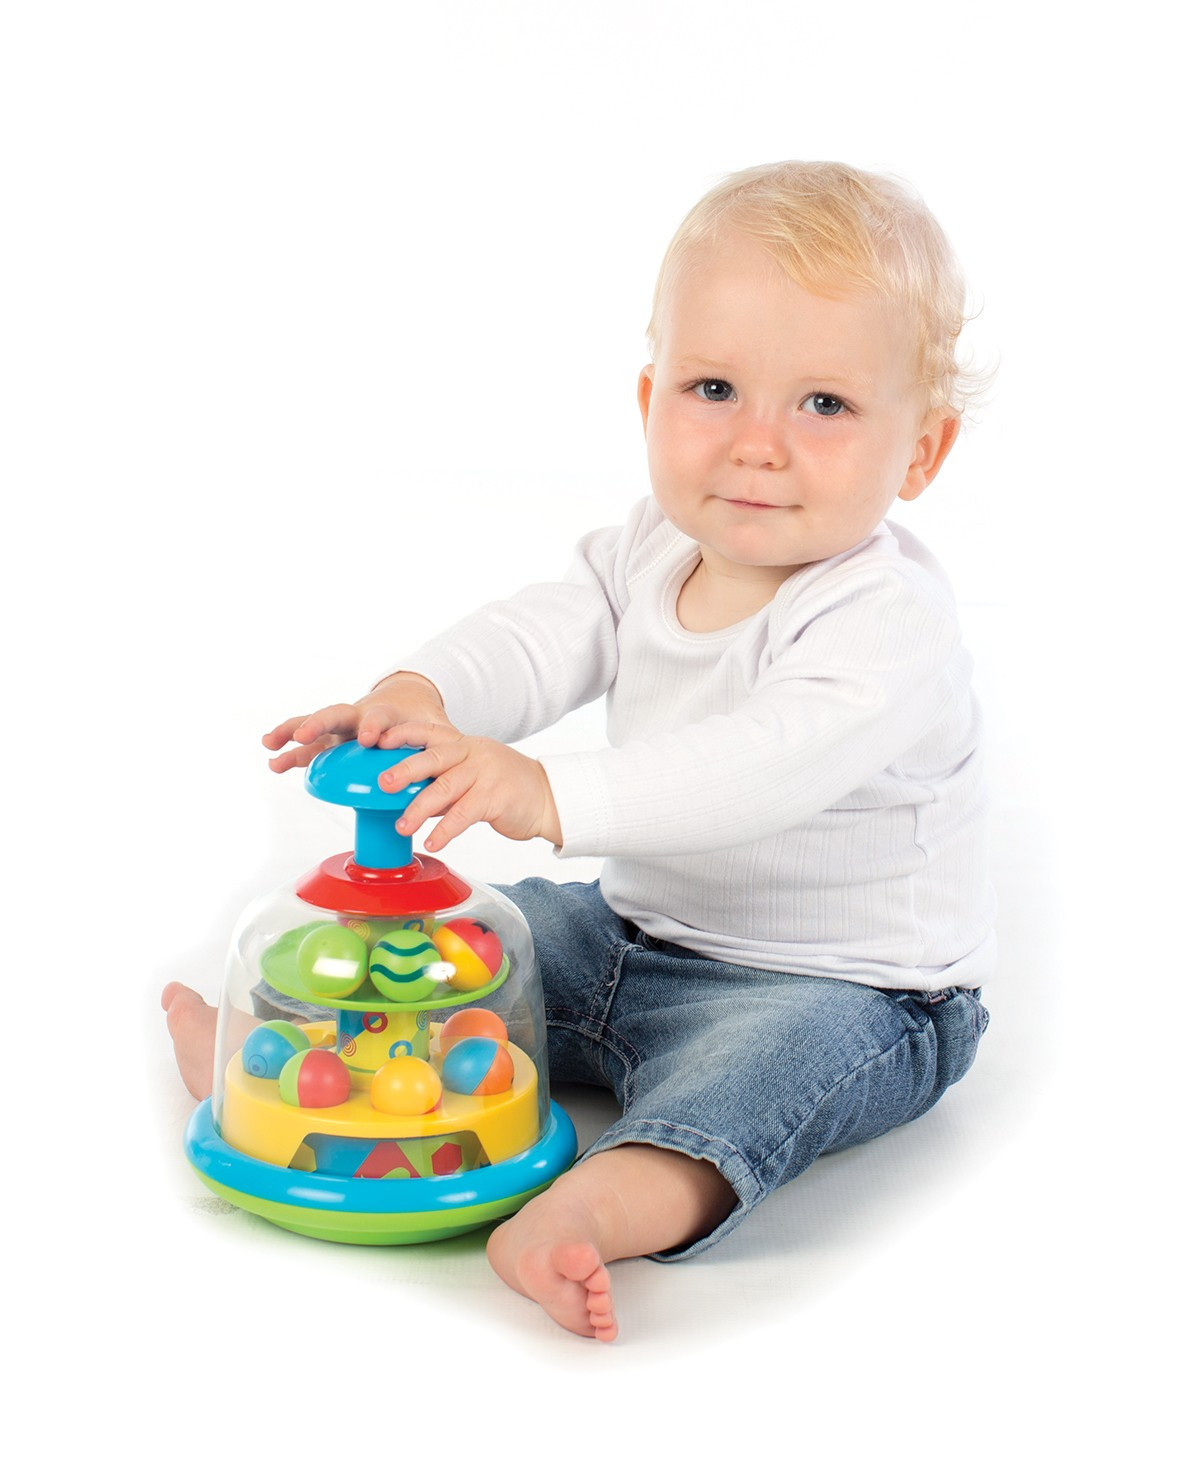 Playgro Spinning Popping Pals